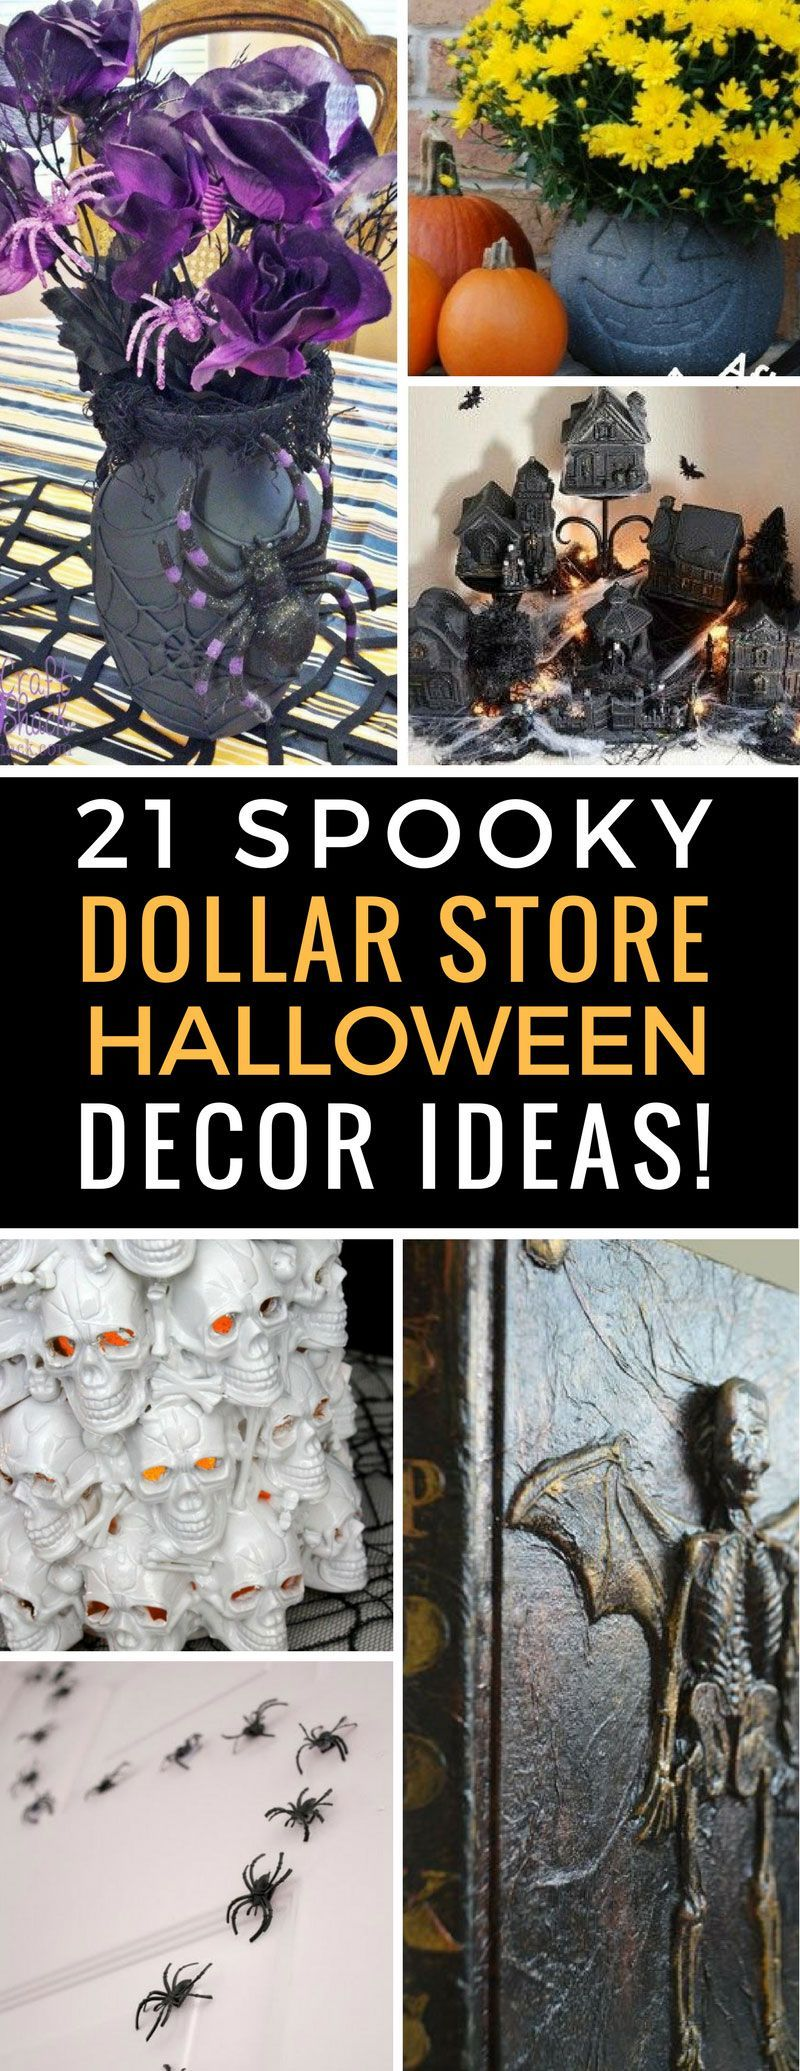 21 Spooky Dollar Store Halloween Decor Ideas You Need to